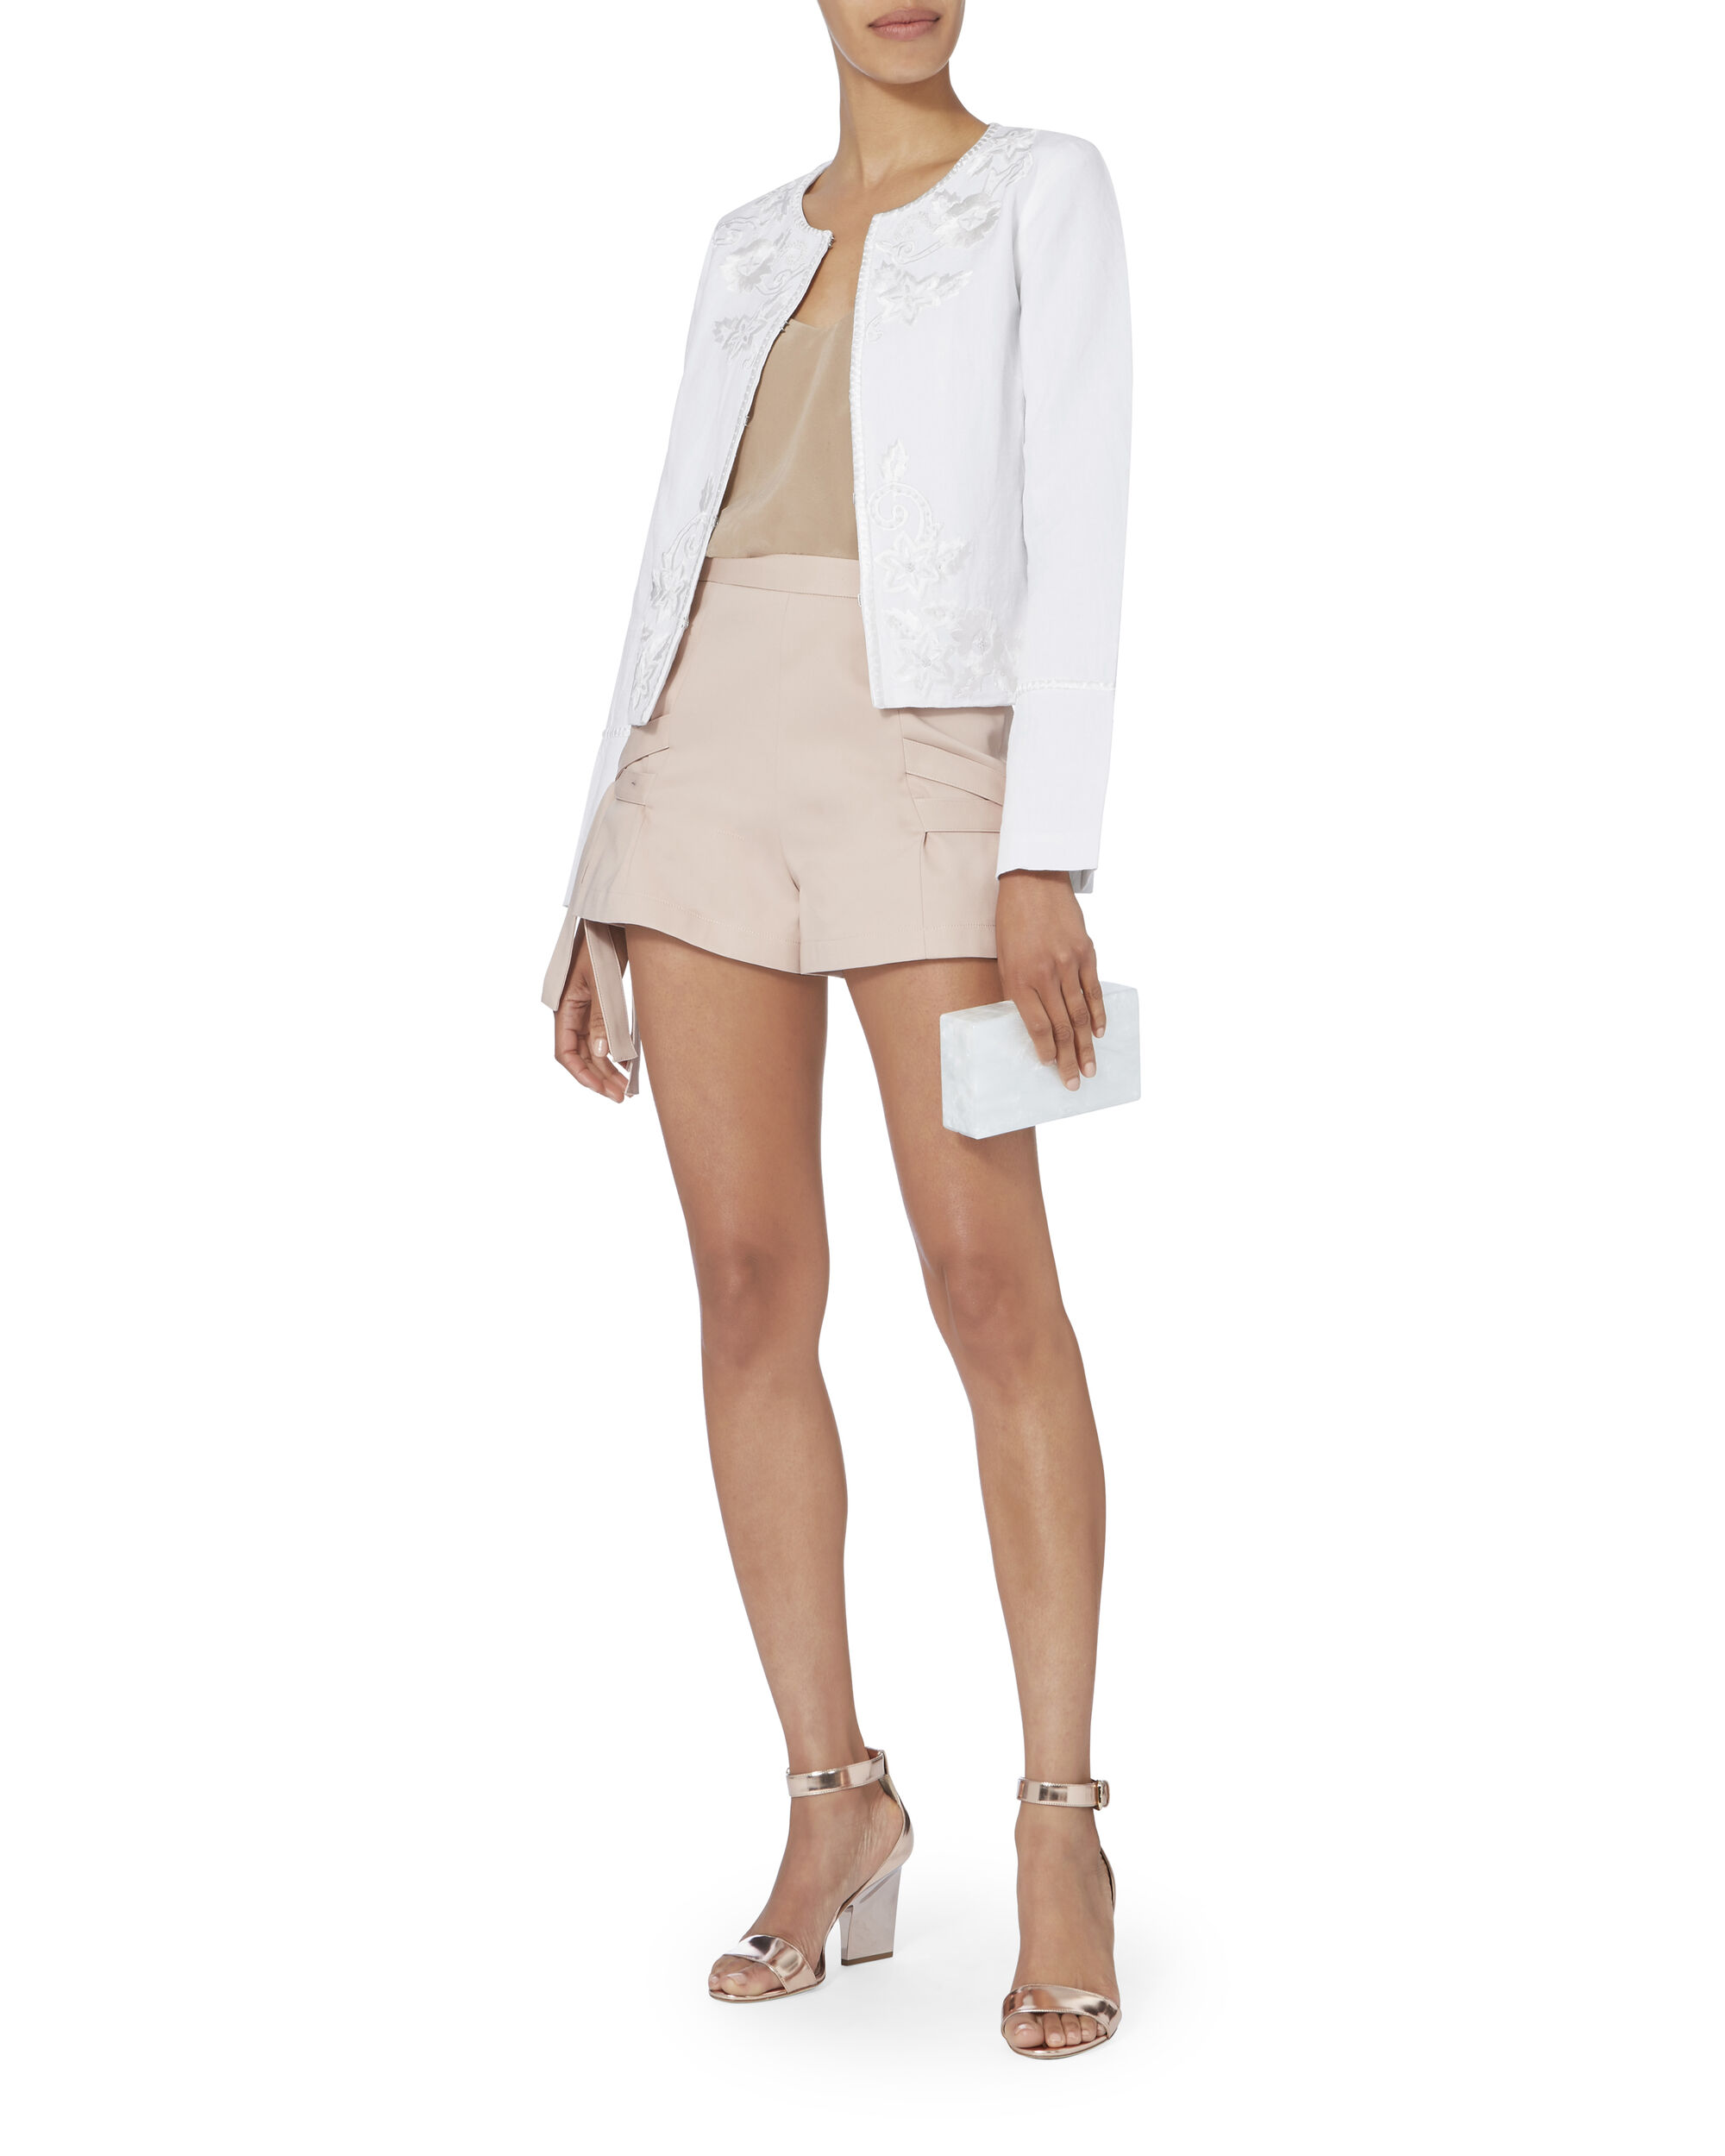 Julia Embroidered Linen Jacket, IVORY, hi-res